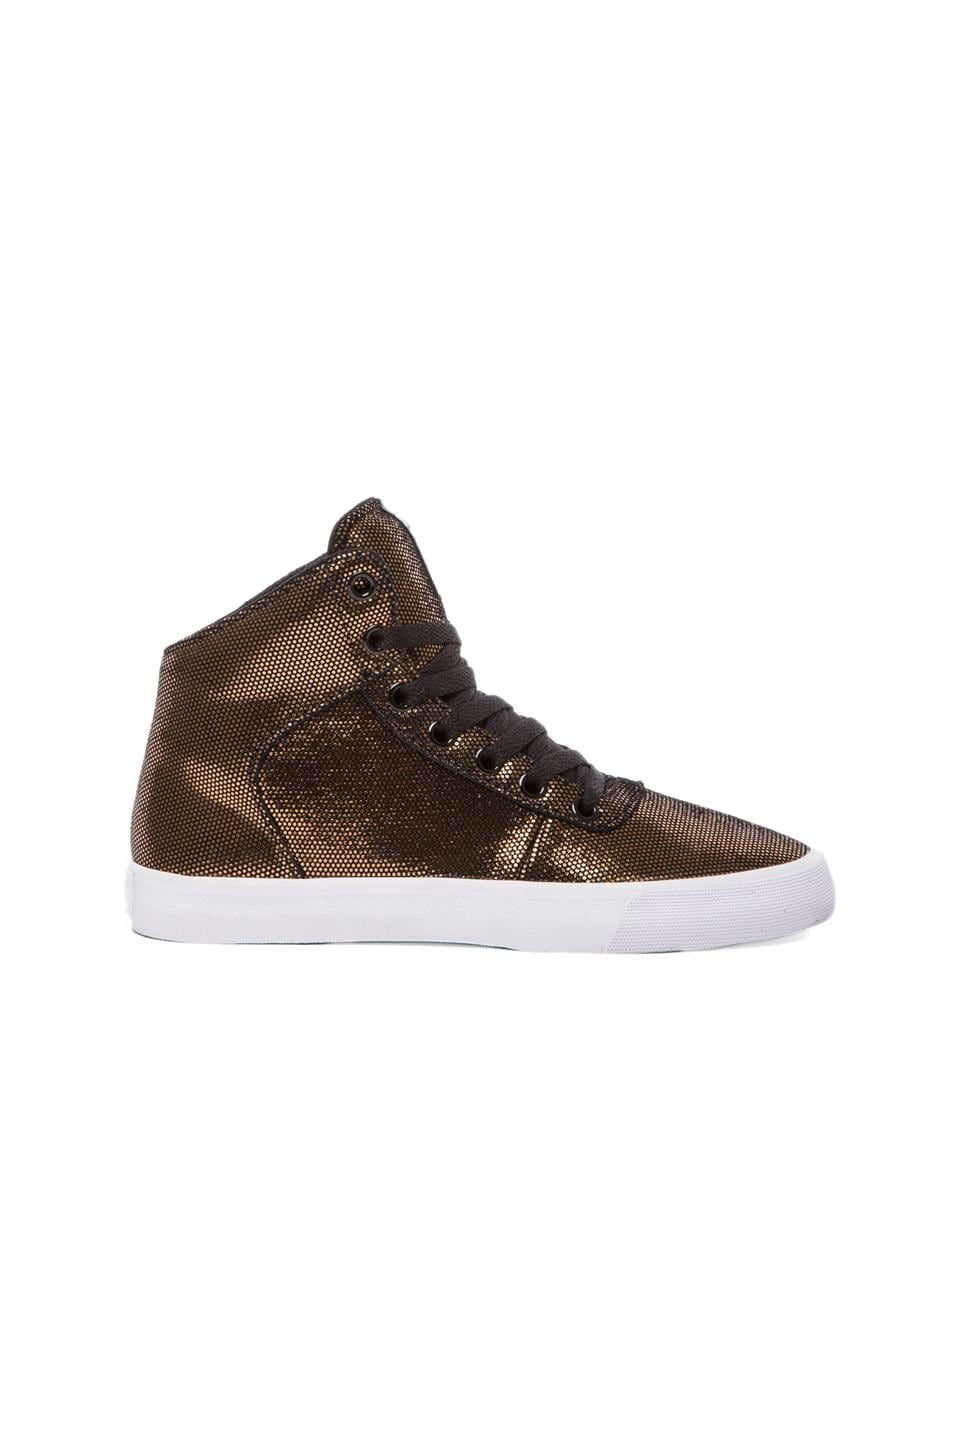 Supra Cuttler Sneaker in Black/Gold Suede